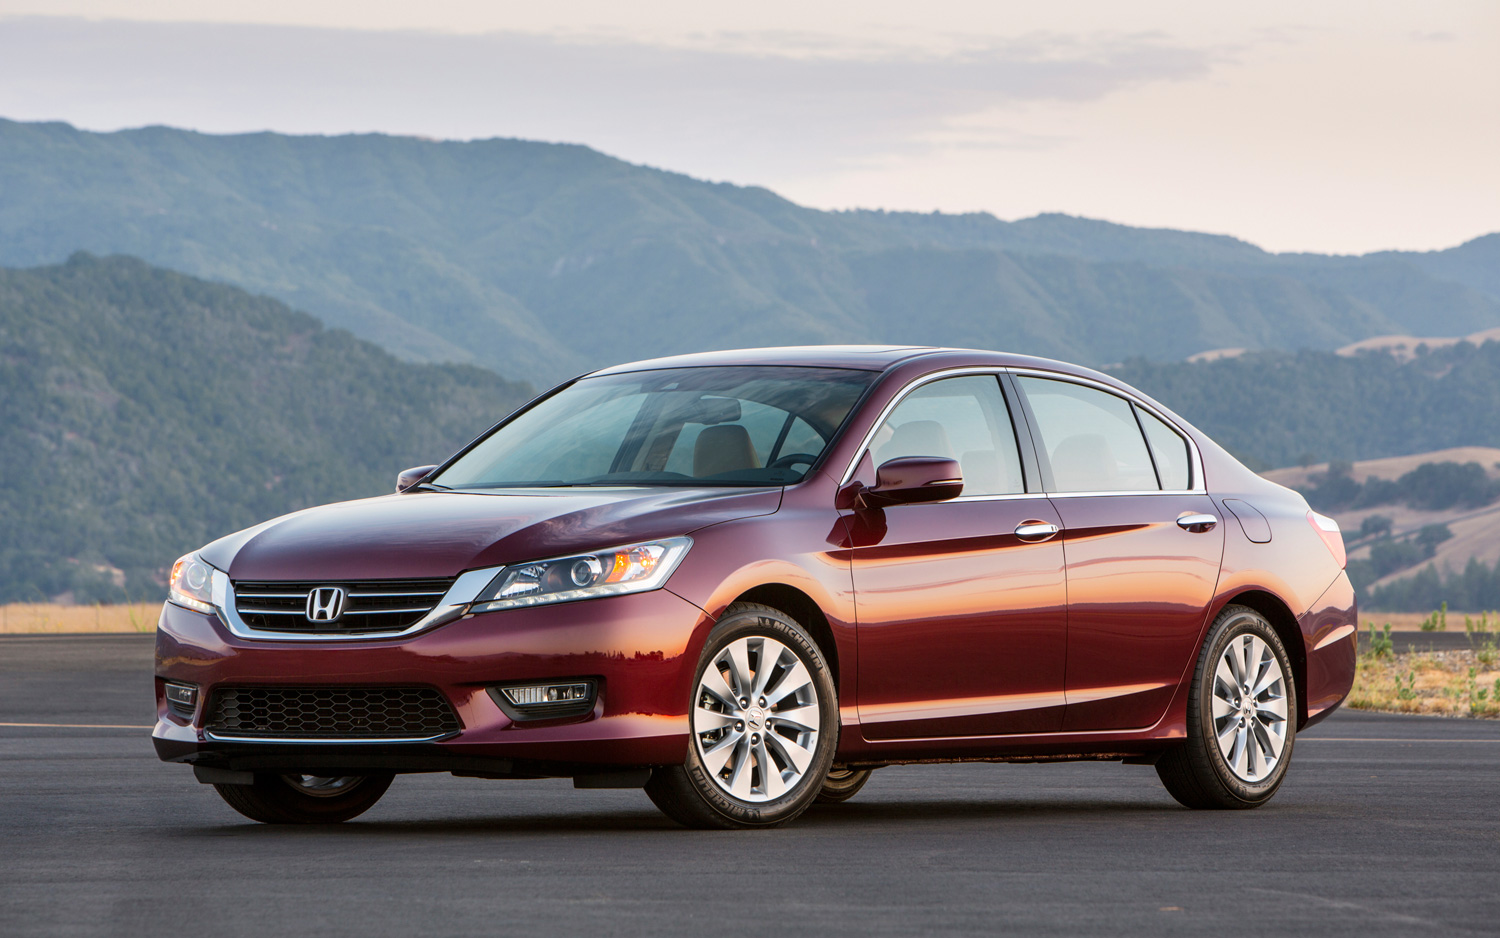 Honda accord sedan 2013 totalmente redise ado lista de carros for Honda accord used 2013